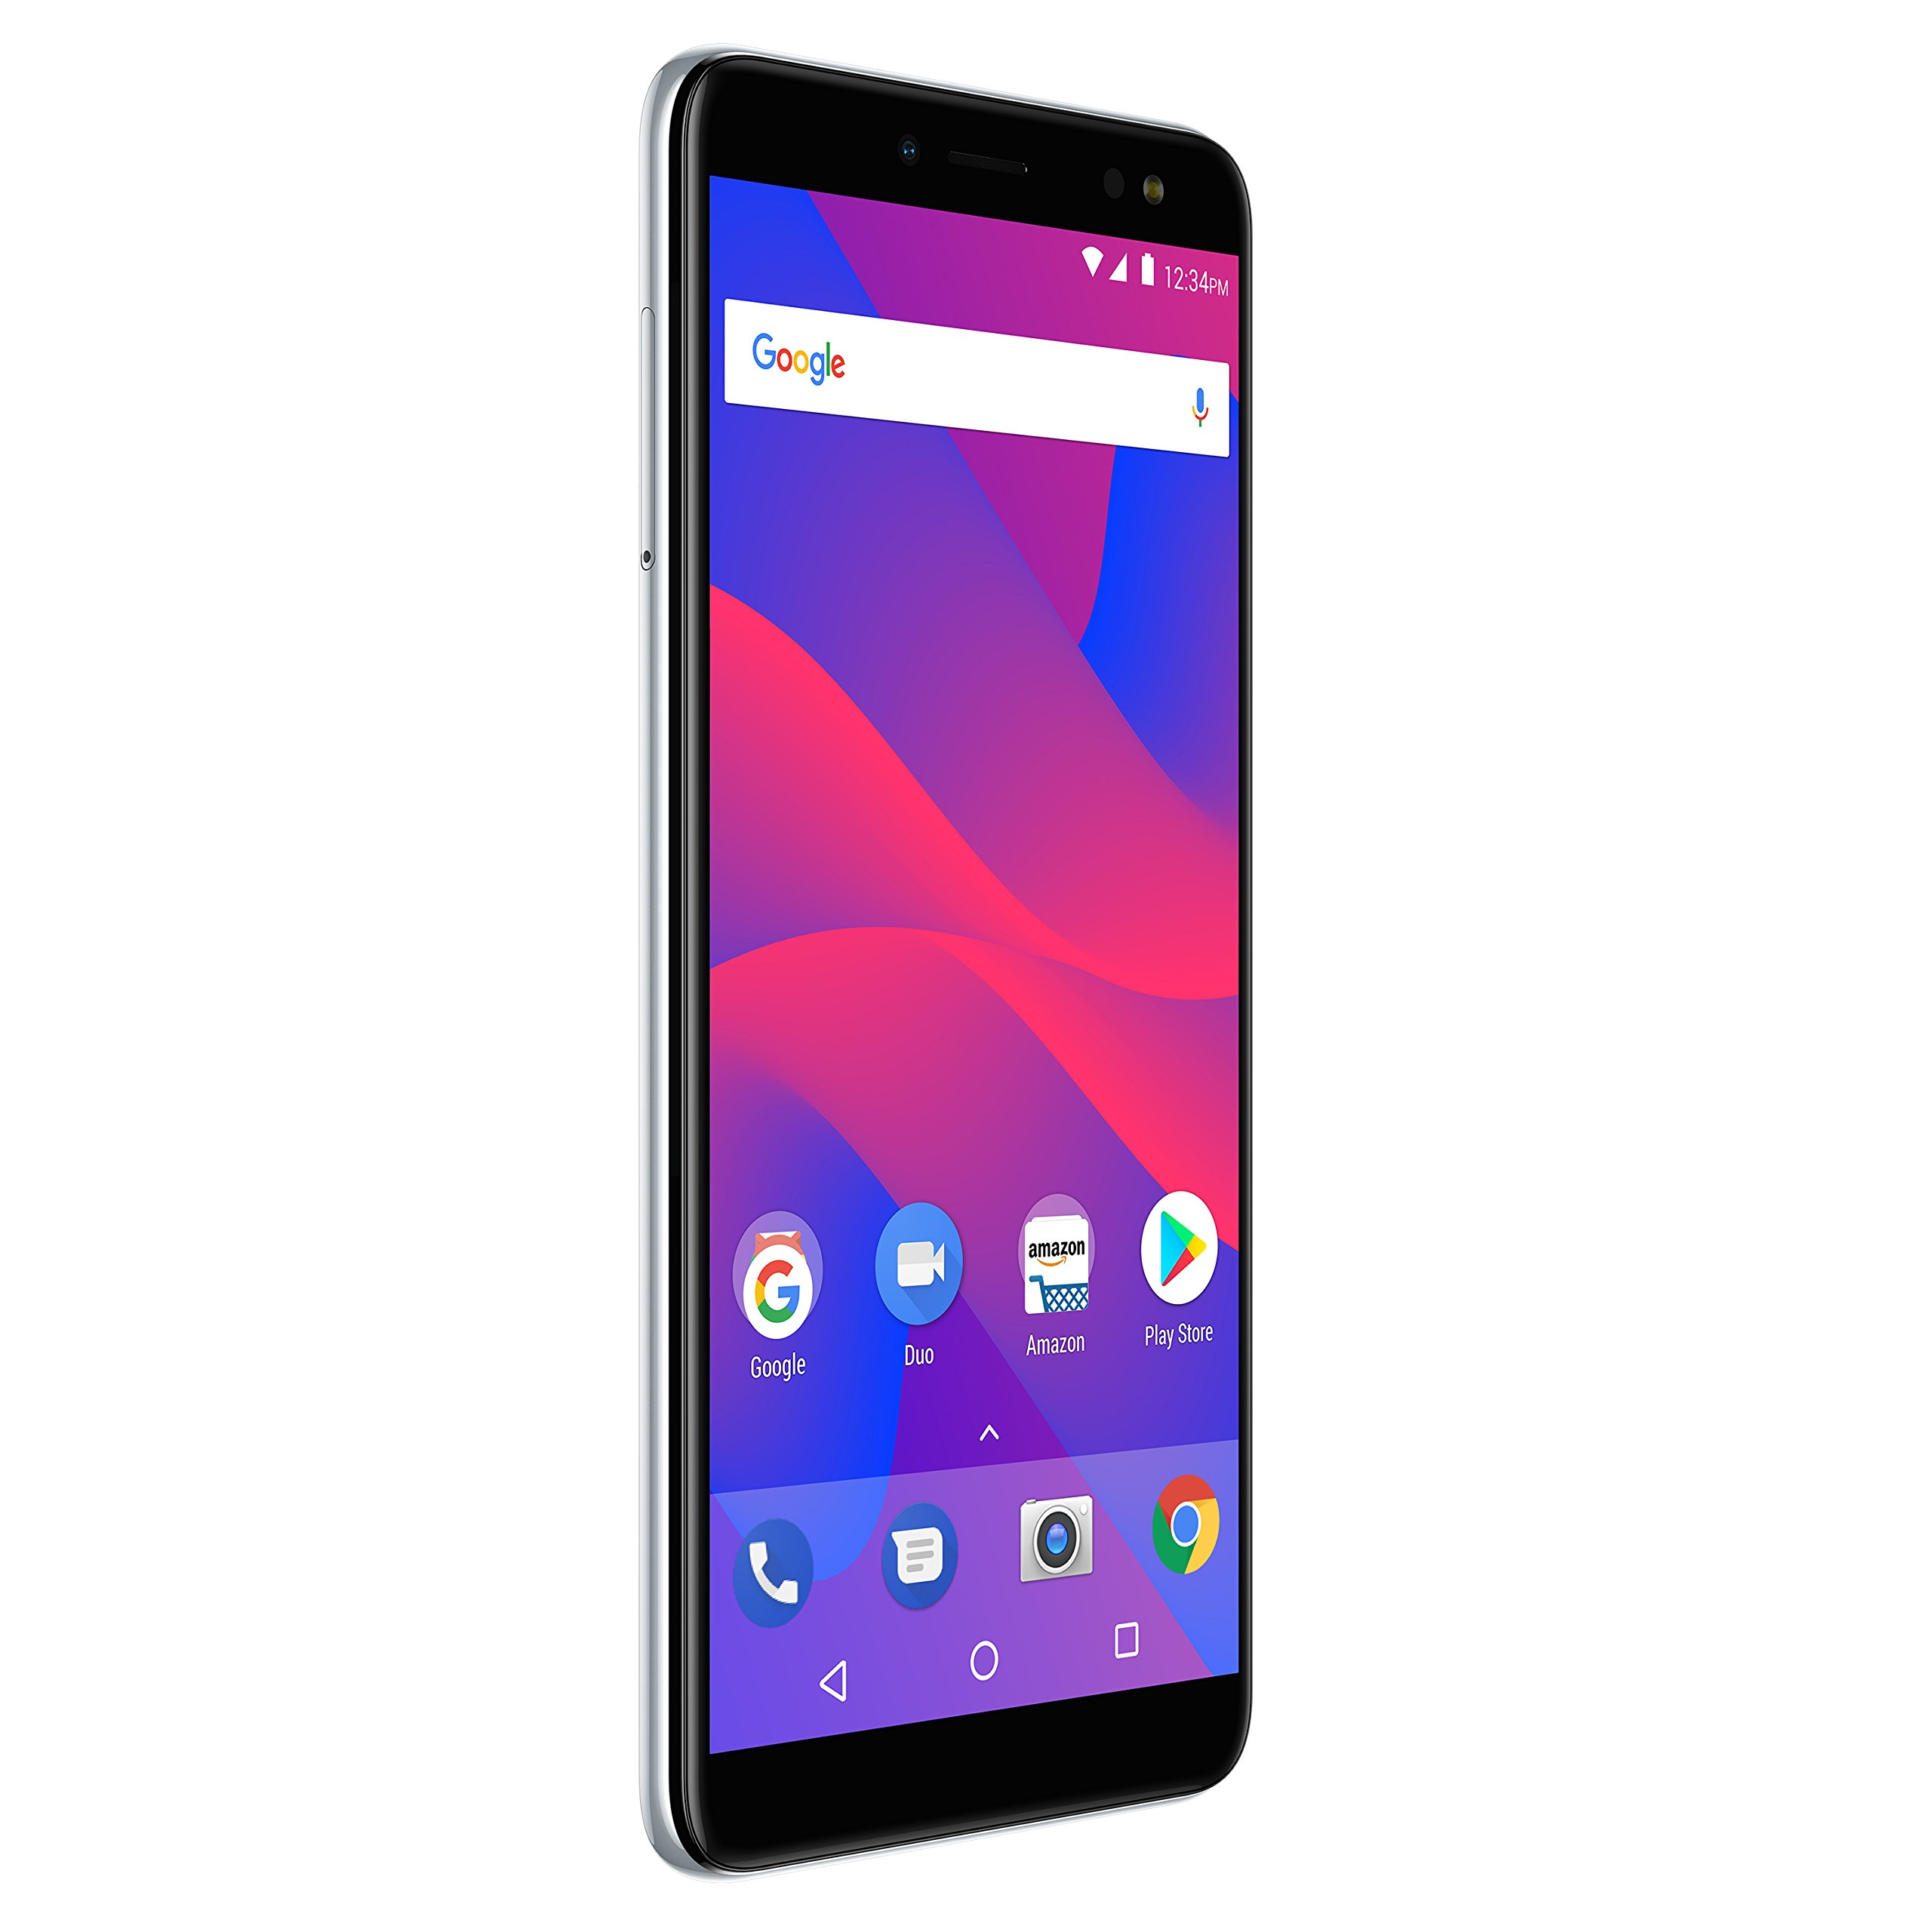 """BLU Vivo XL3 -5.5"""" HD+ 18:9 Display Smartphone with Android 8.0 Oreo –Silver"""